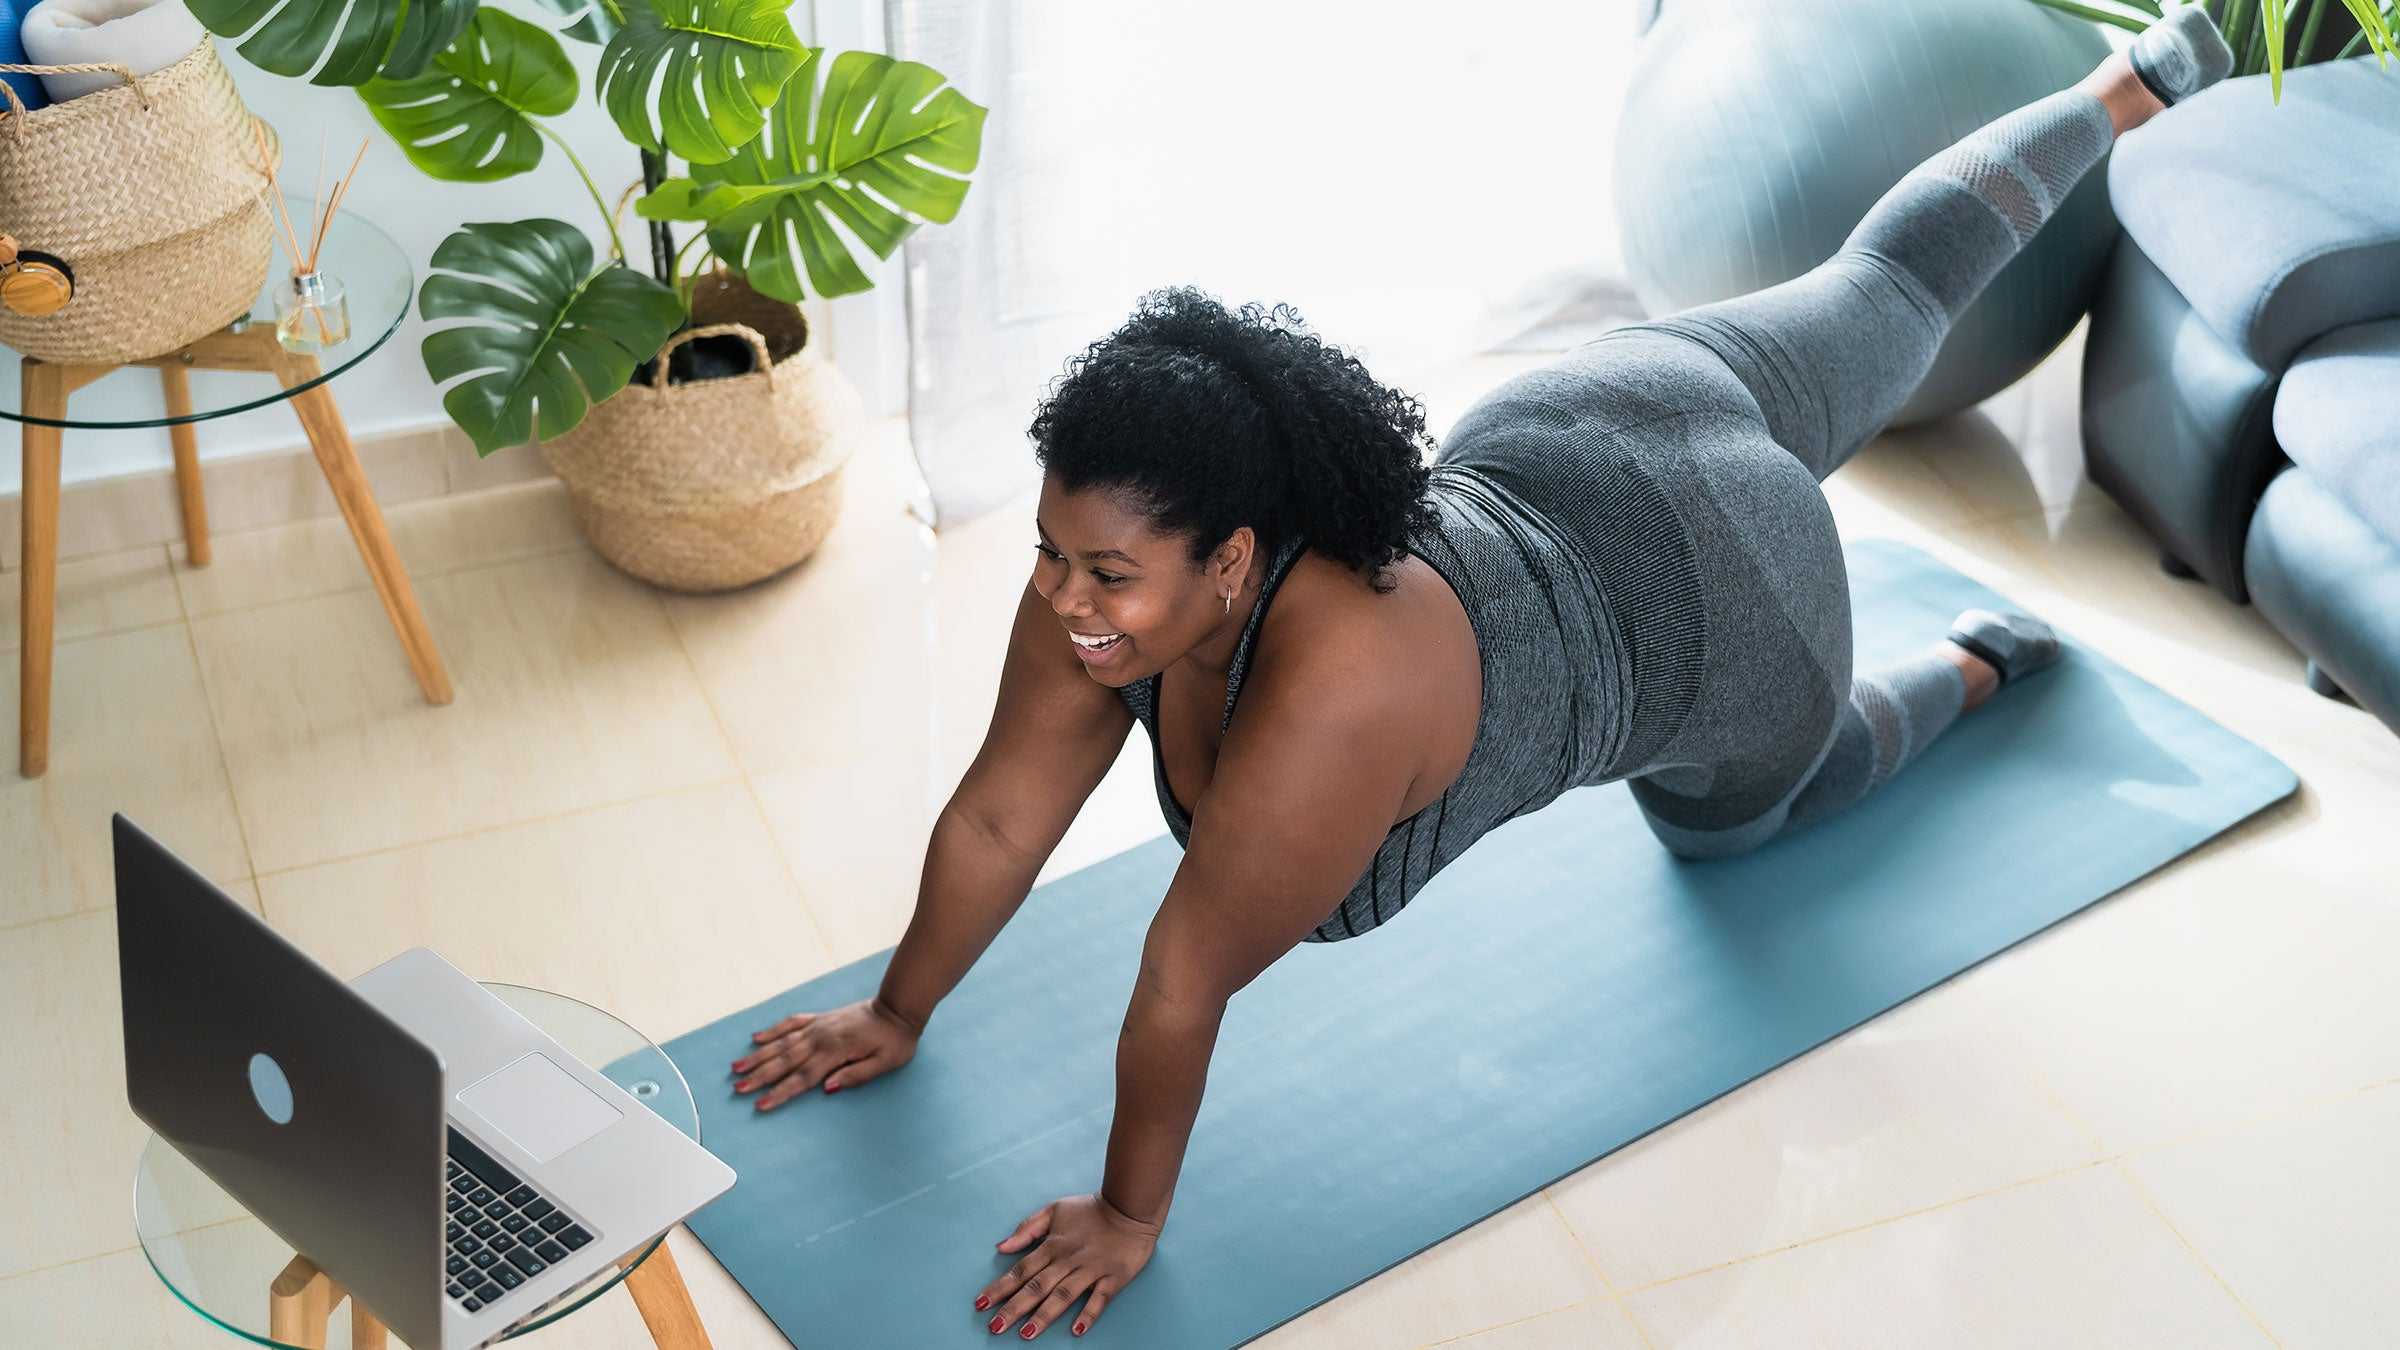 A woman pratices virtual yoga at home in her living room